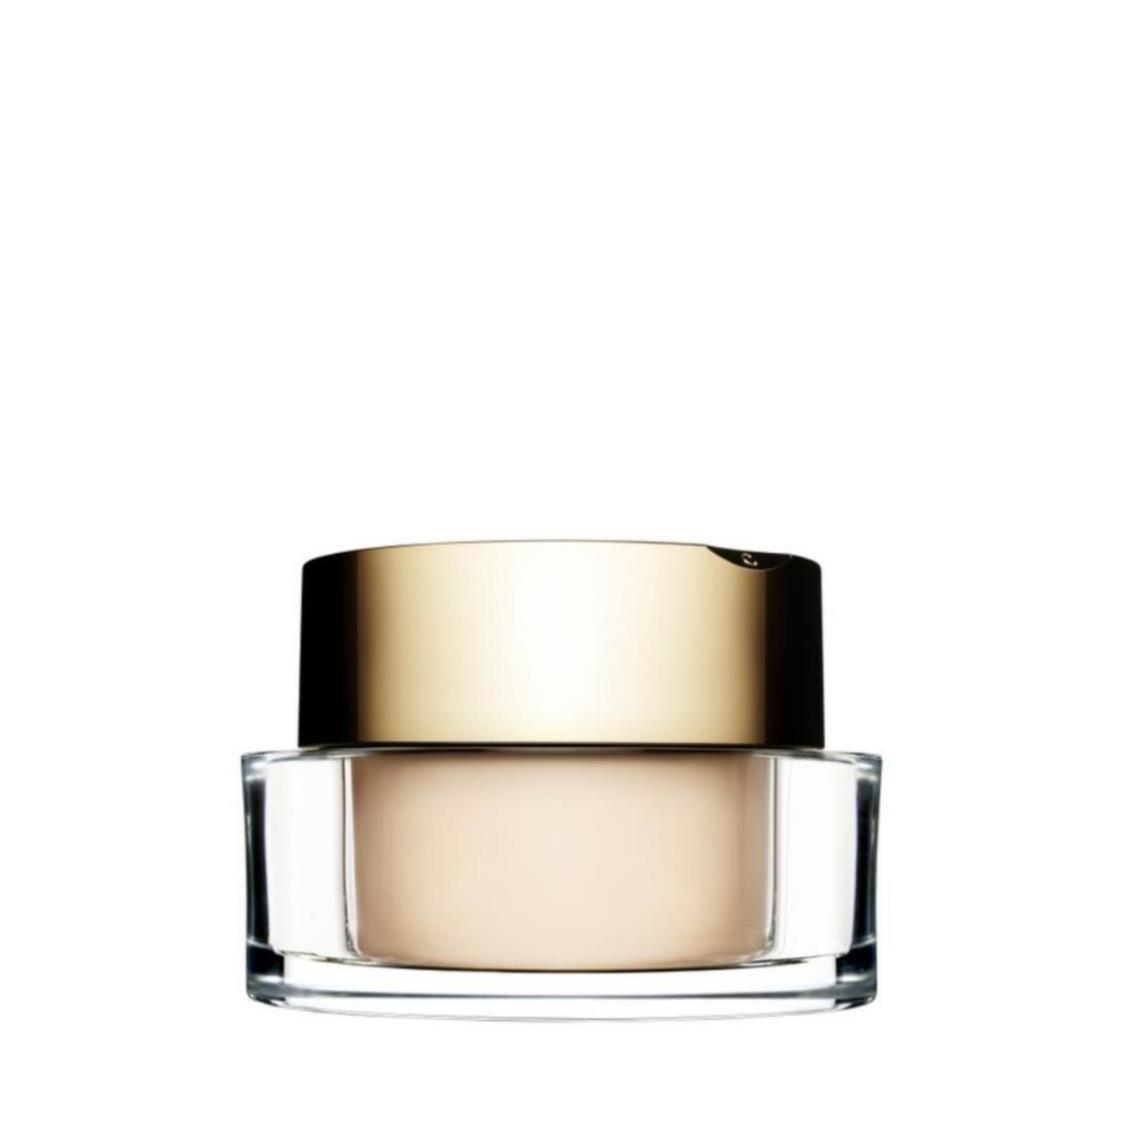 Clarins Mineral Loose Powder